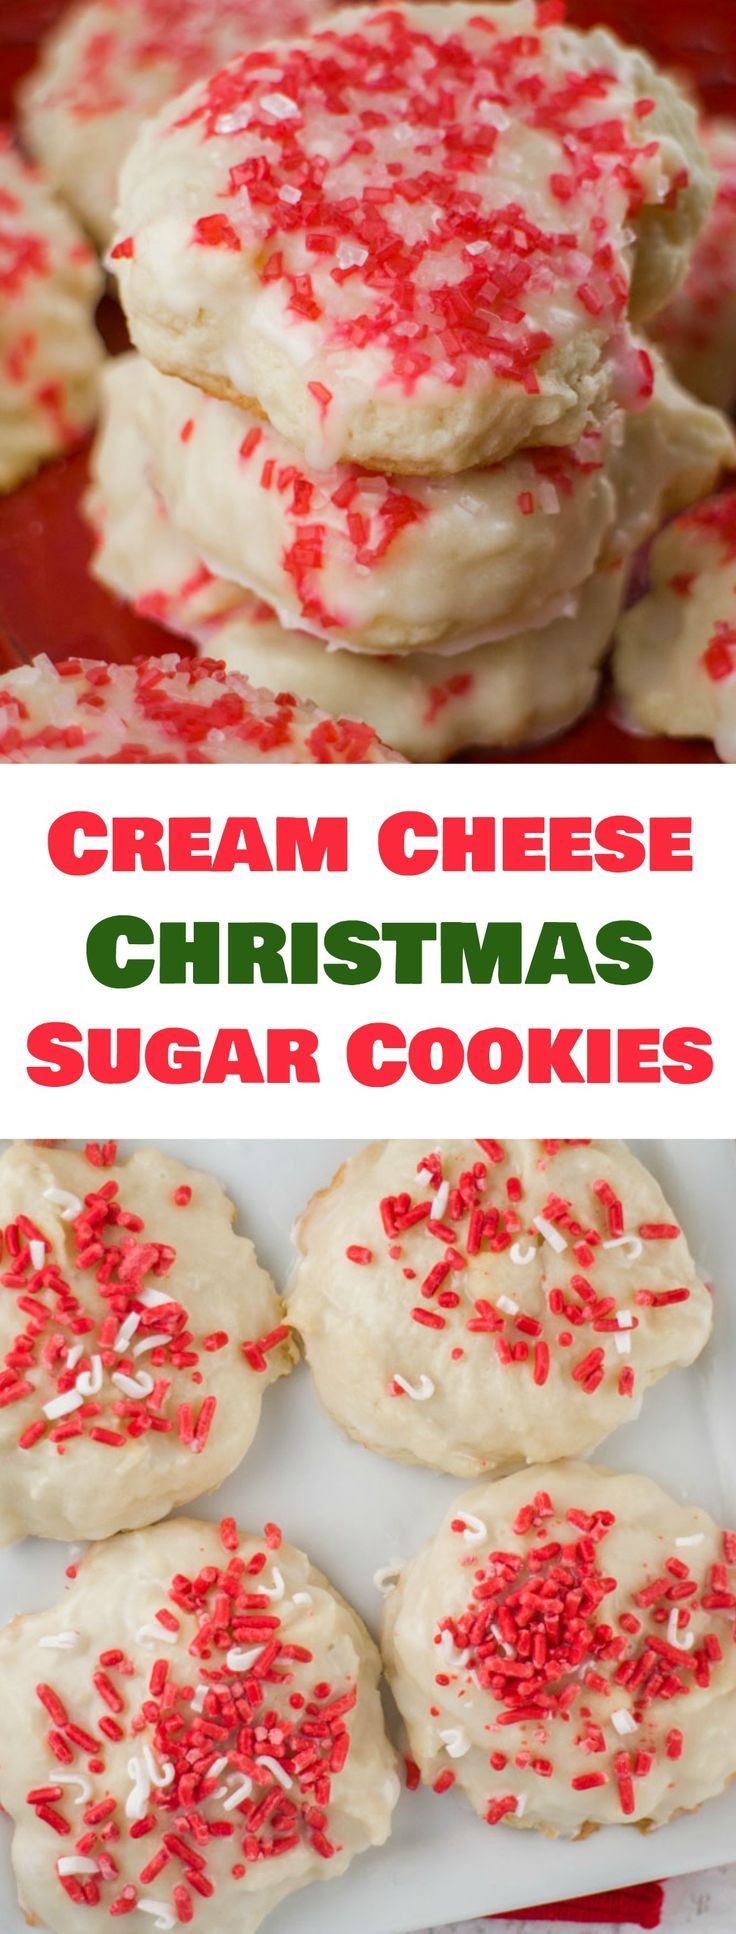 17 Best images about Cookie Recipes on Pinterest | Cookie ...